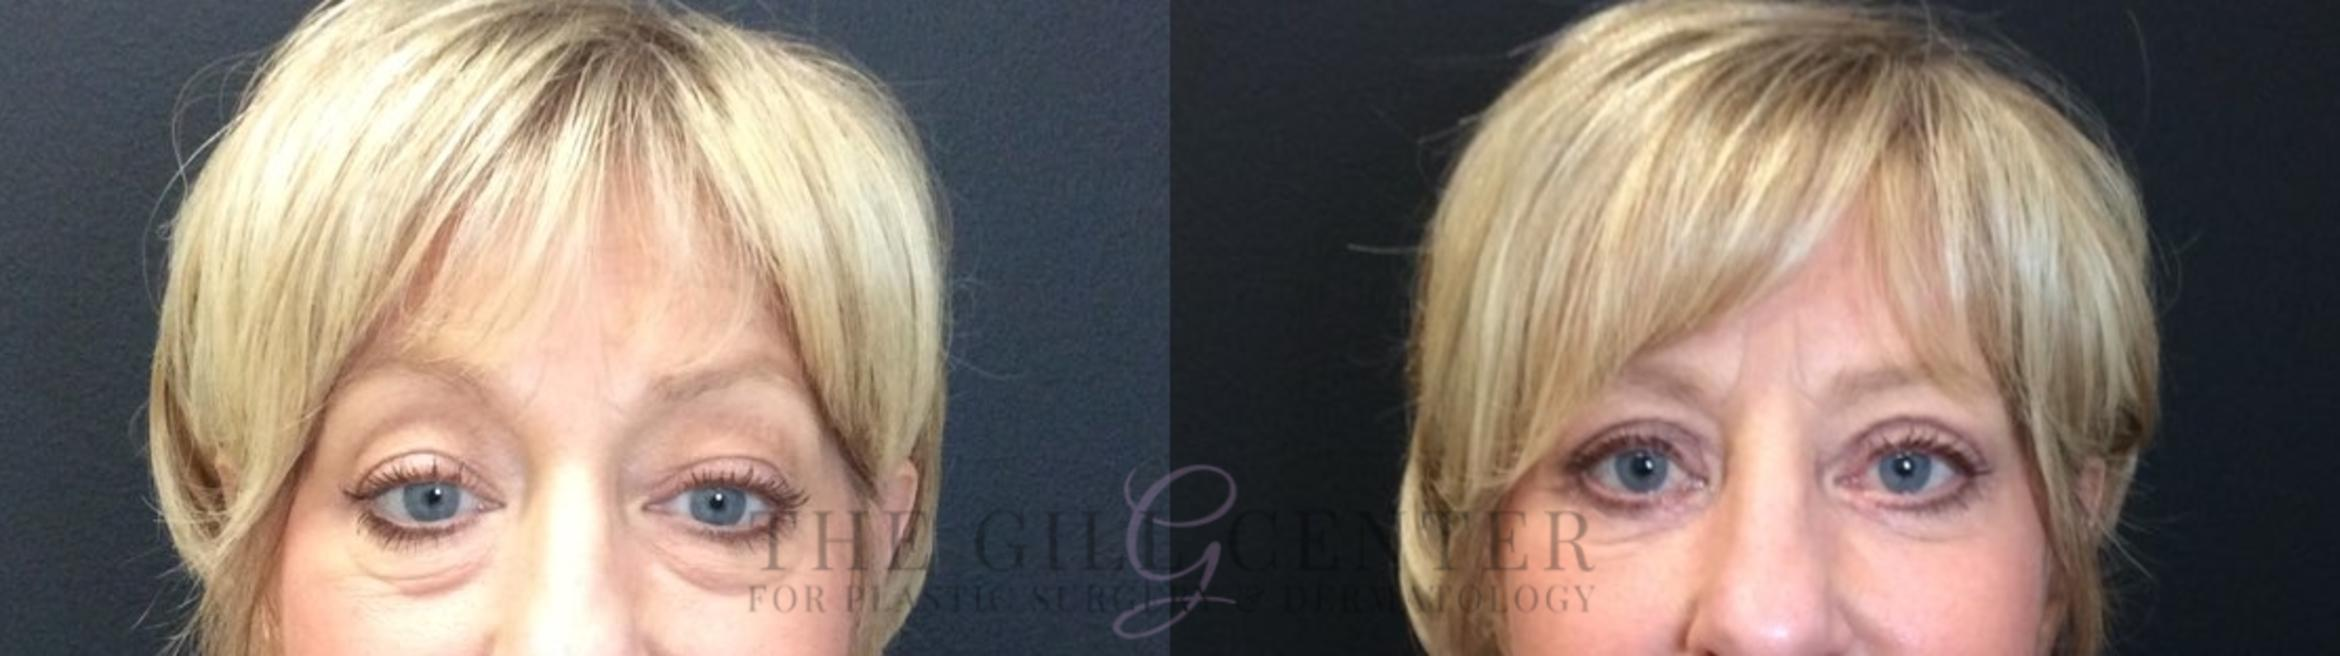 Eyelid Lift Case 432 Before & After Front | Shenandoah, TX | The Gill Center for Plastic Surgery and Dermatology